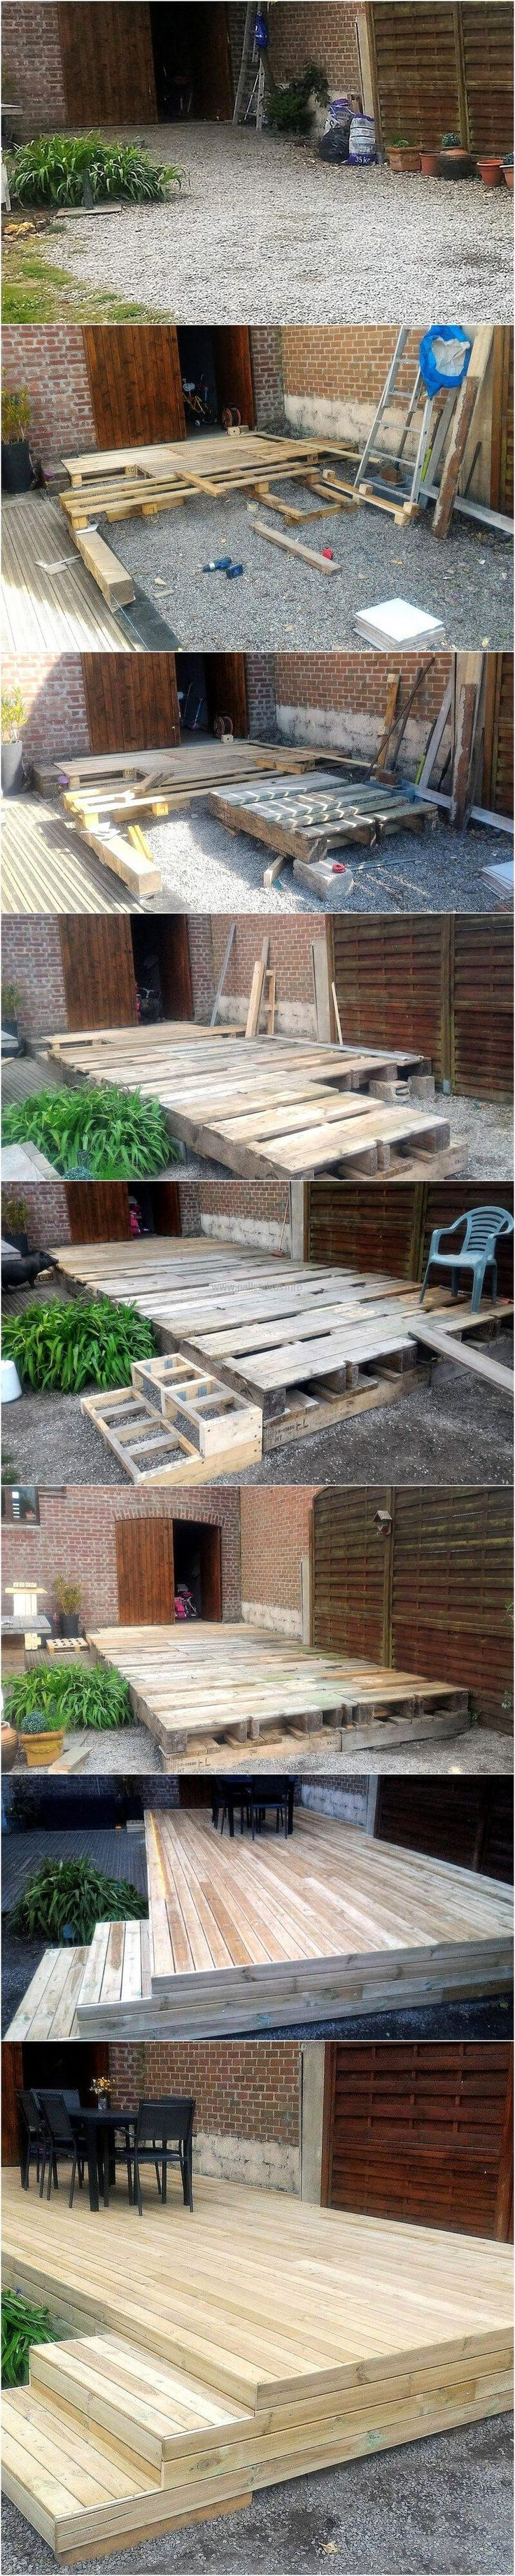 The idea of DIY wood pallet patio deck is awesome because it will allow a smooth area to place the furniture for enjoying the weather. The deck in the patio is good to create because it offers a space to have a party with the friends or the family on weekends.